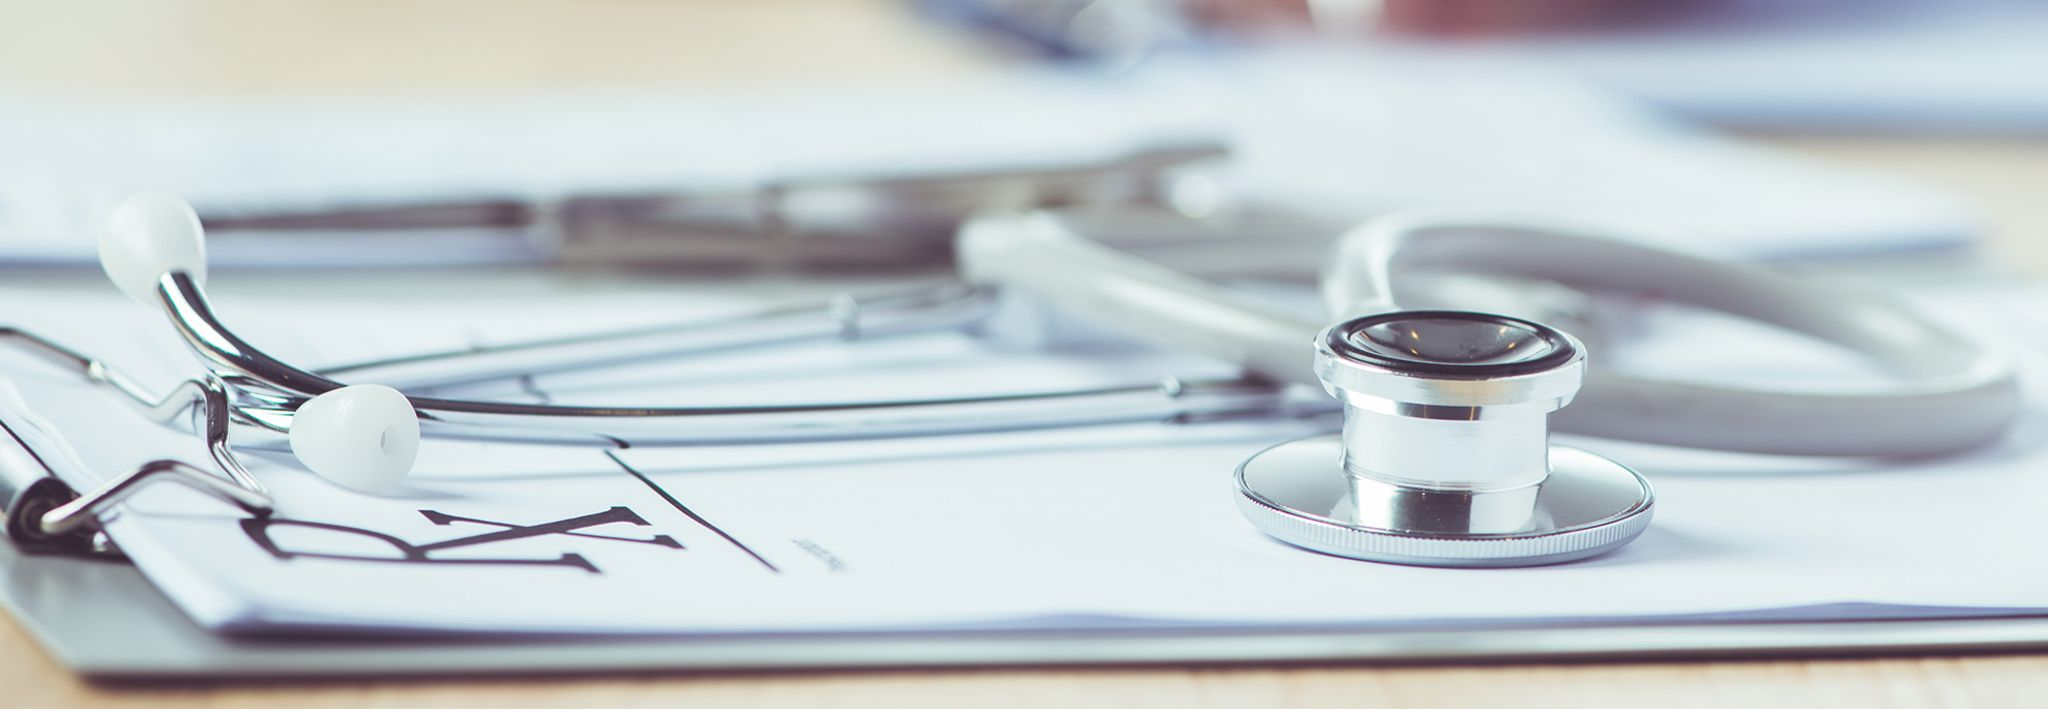 A stethoscope is laying on a doctor's notepad.